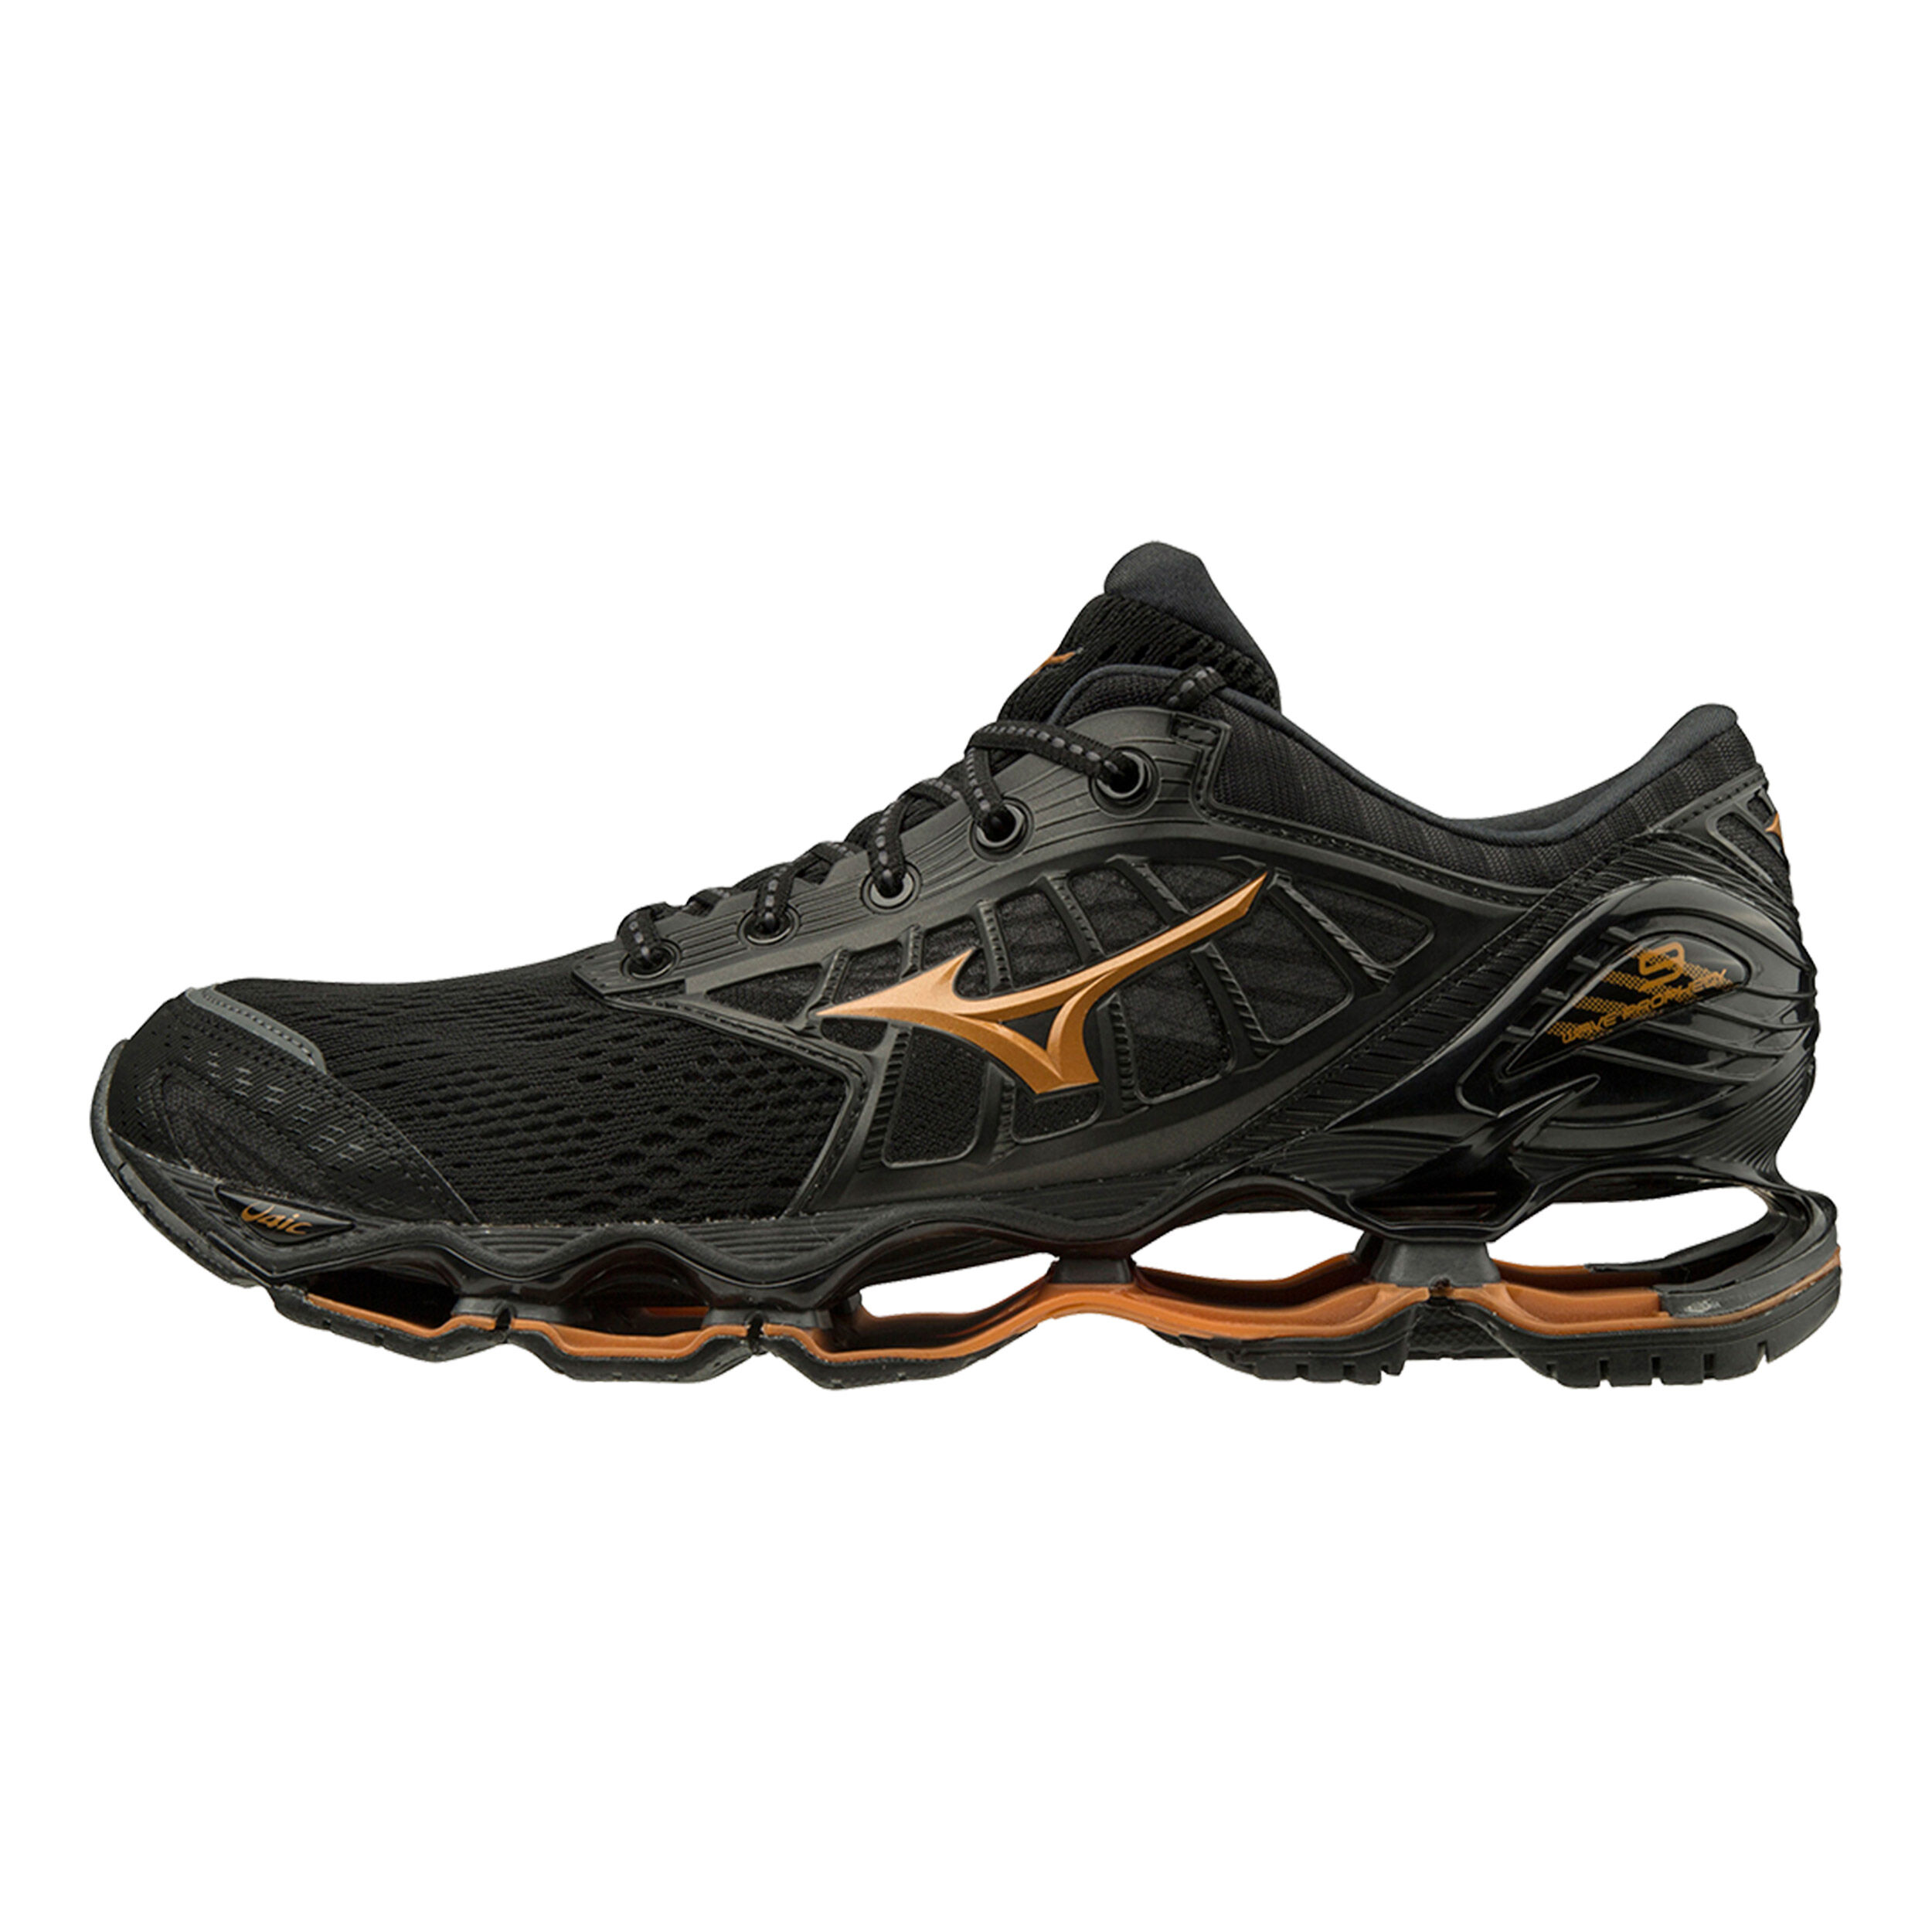 mens mizuno running shoes size 9.5 europe high tops 90s